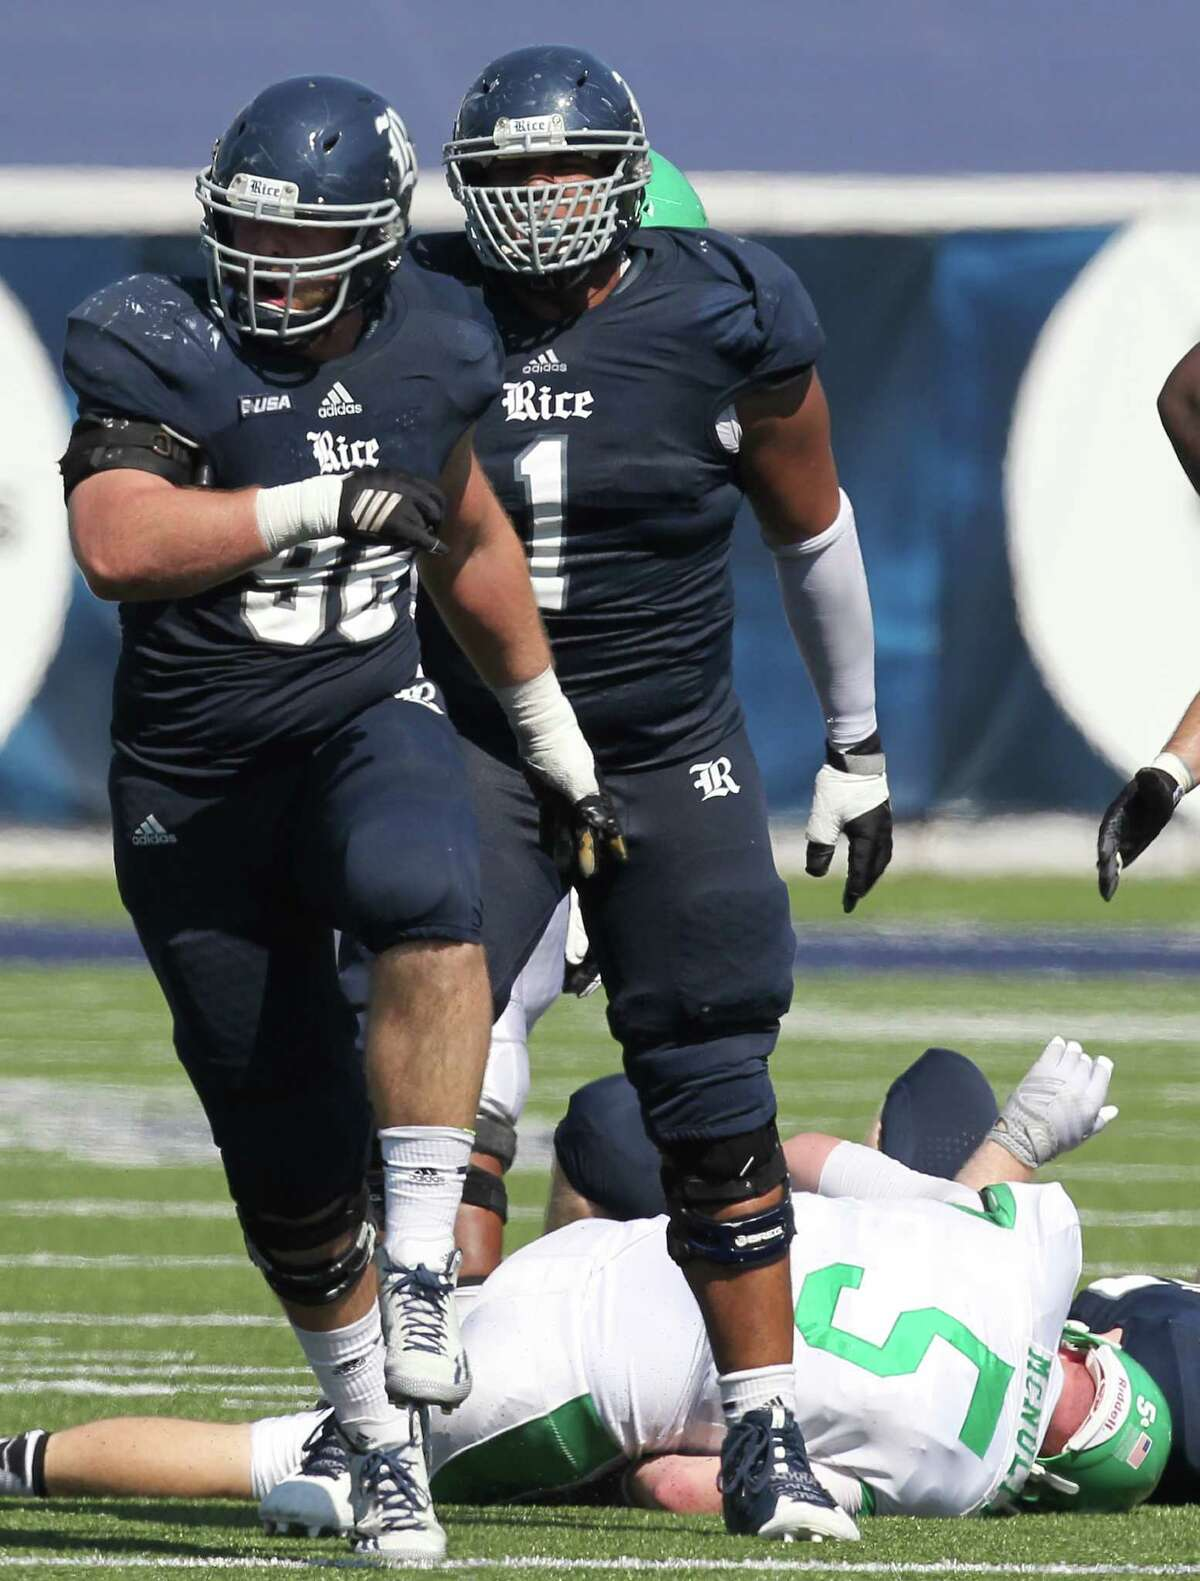 Rice Owls defensive end Dylan Klare (96) celebrates after sacking North Texas Mean Green offensive lineman Kaydon Kirby (50) for a loss in a Conference USA football game in the first half on Saturday, October 25, 2014 at Rice Stadium in Houston, TX.